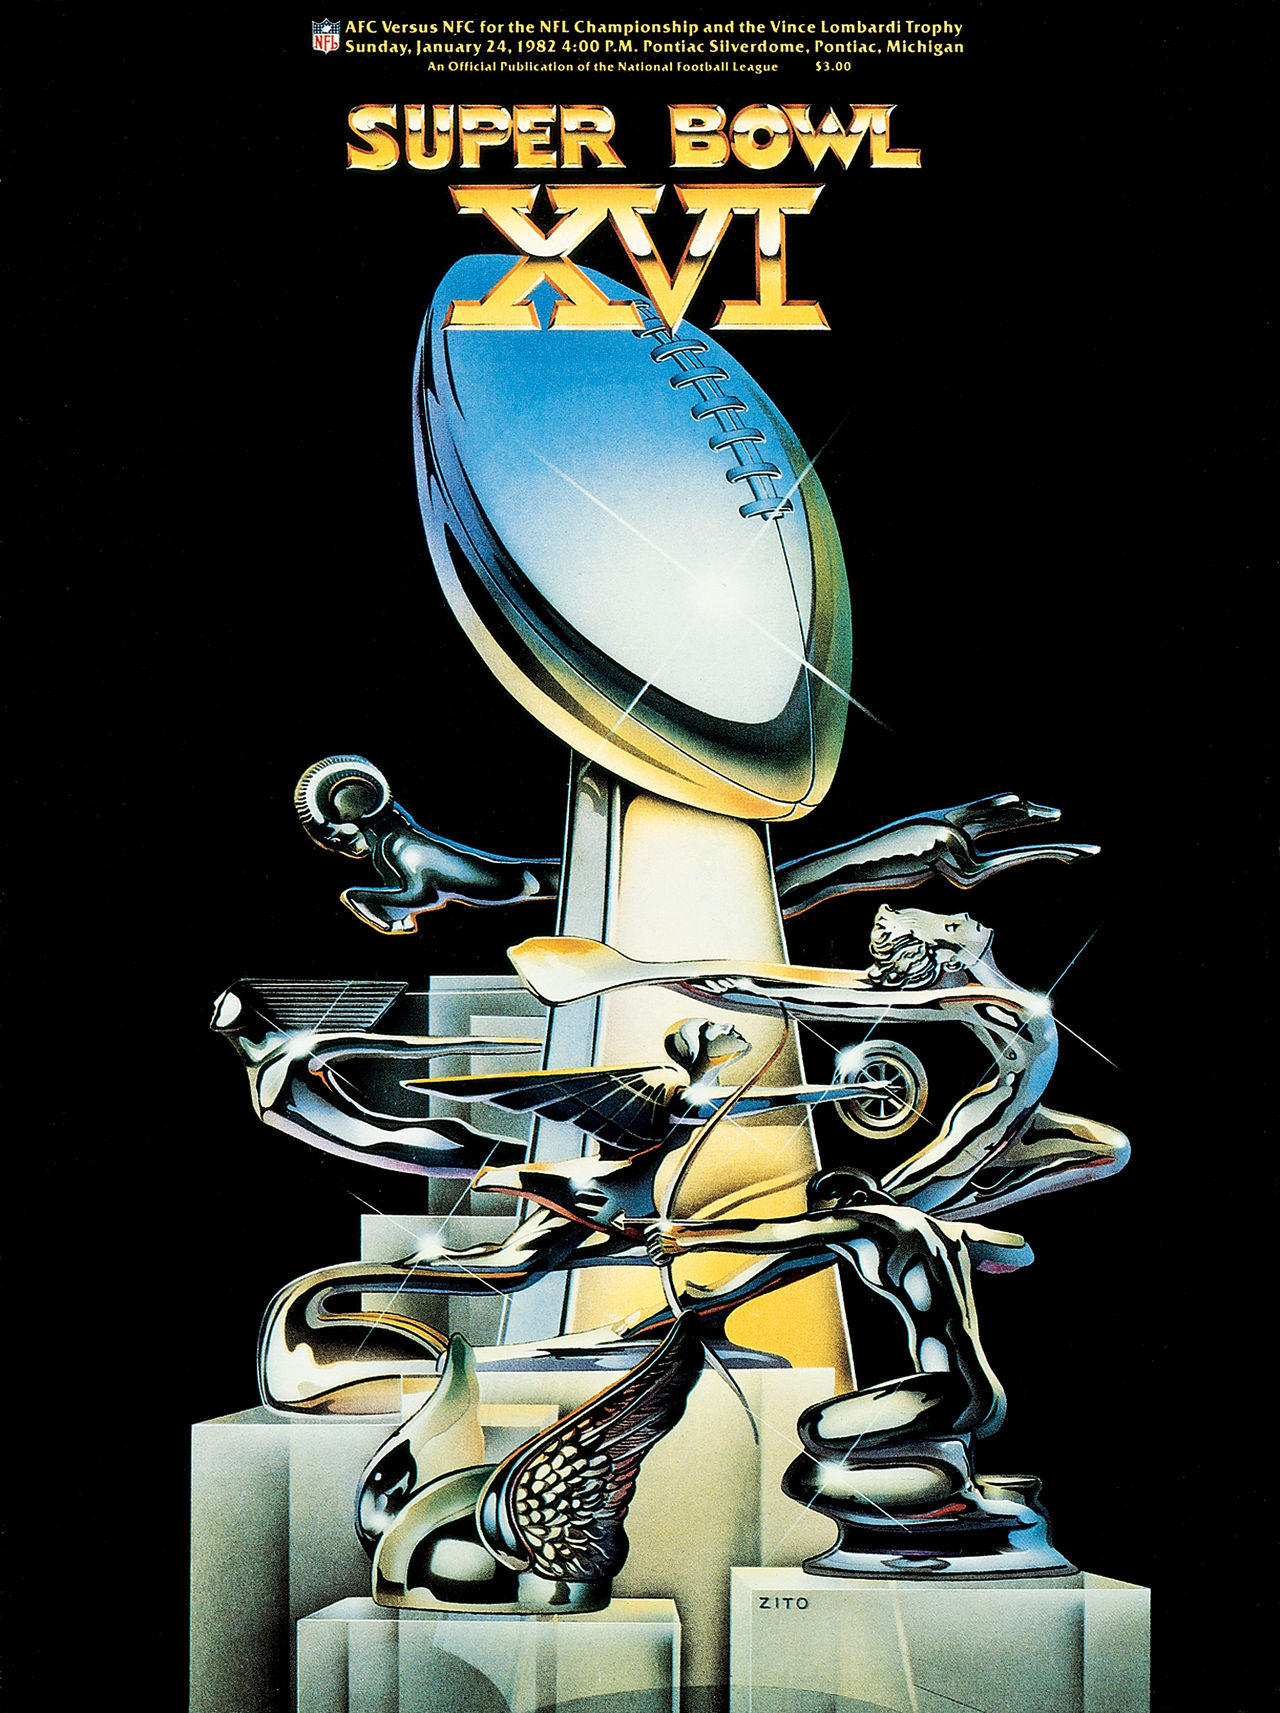 Super Bowl XVI        Program